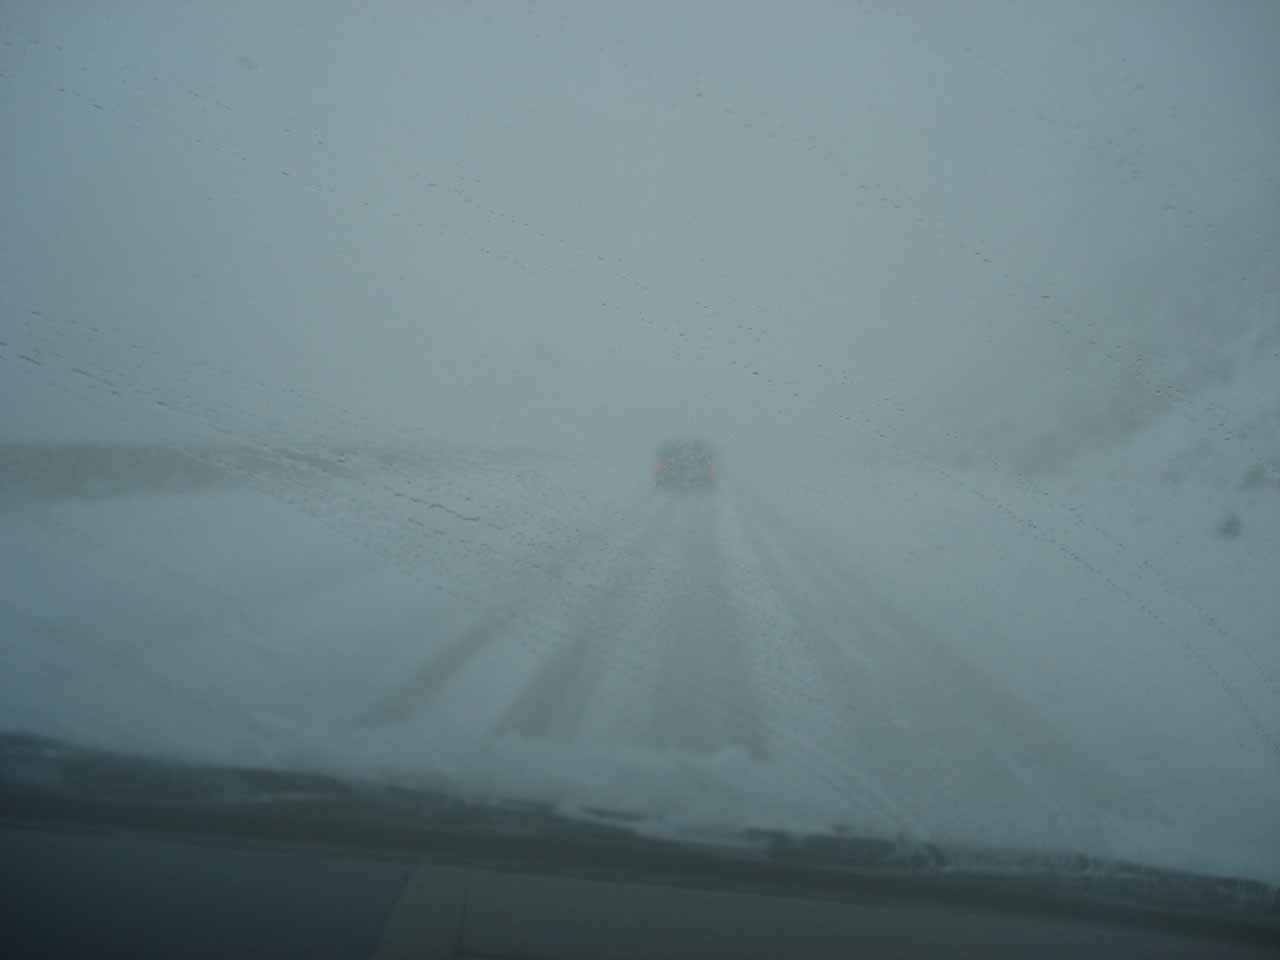 Very dangerous driving conditions on the Interstate 8